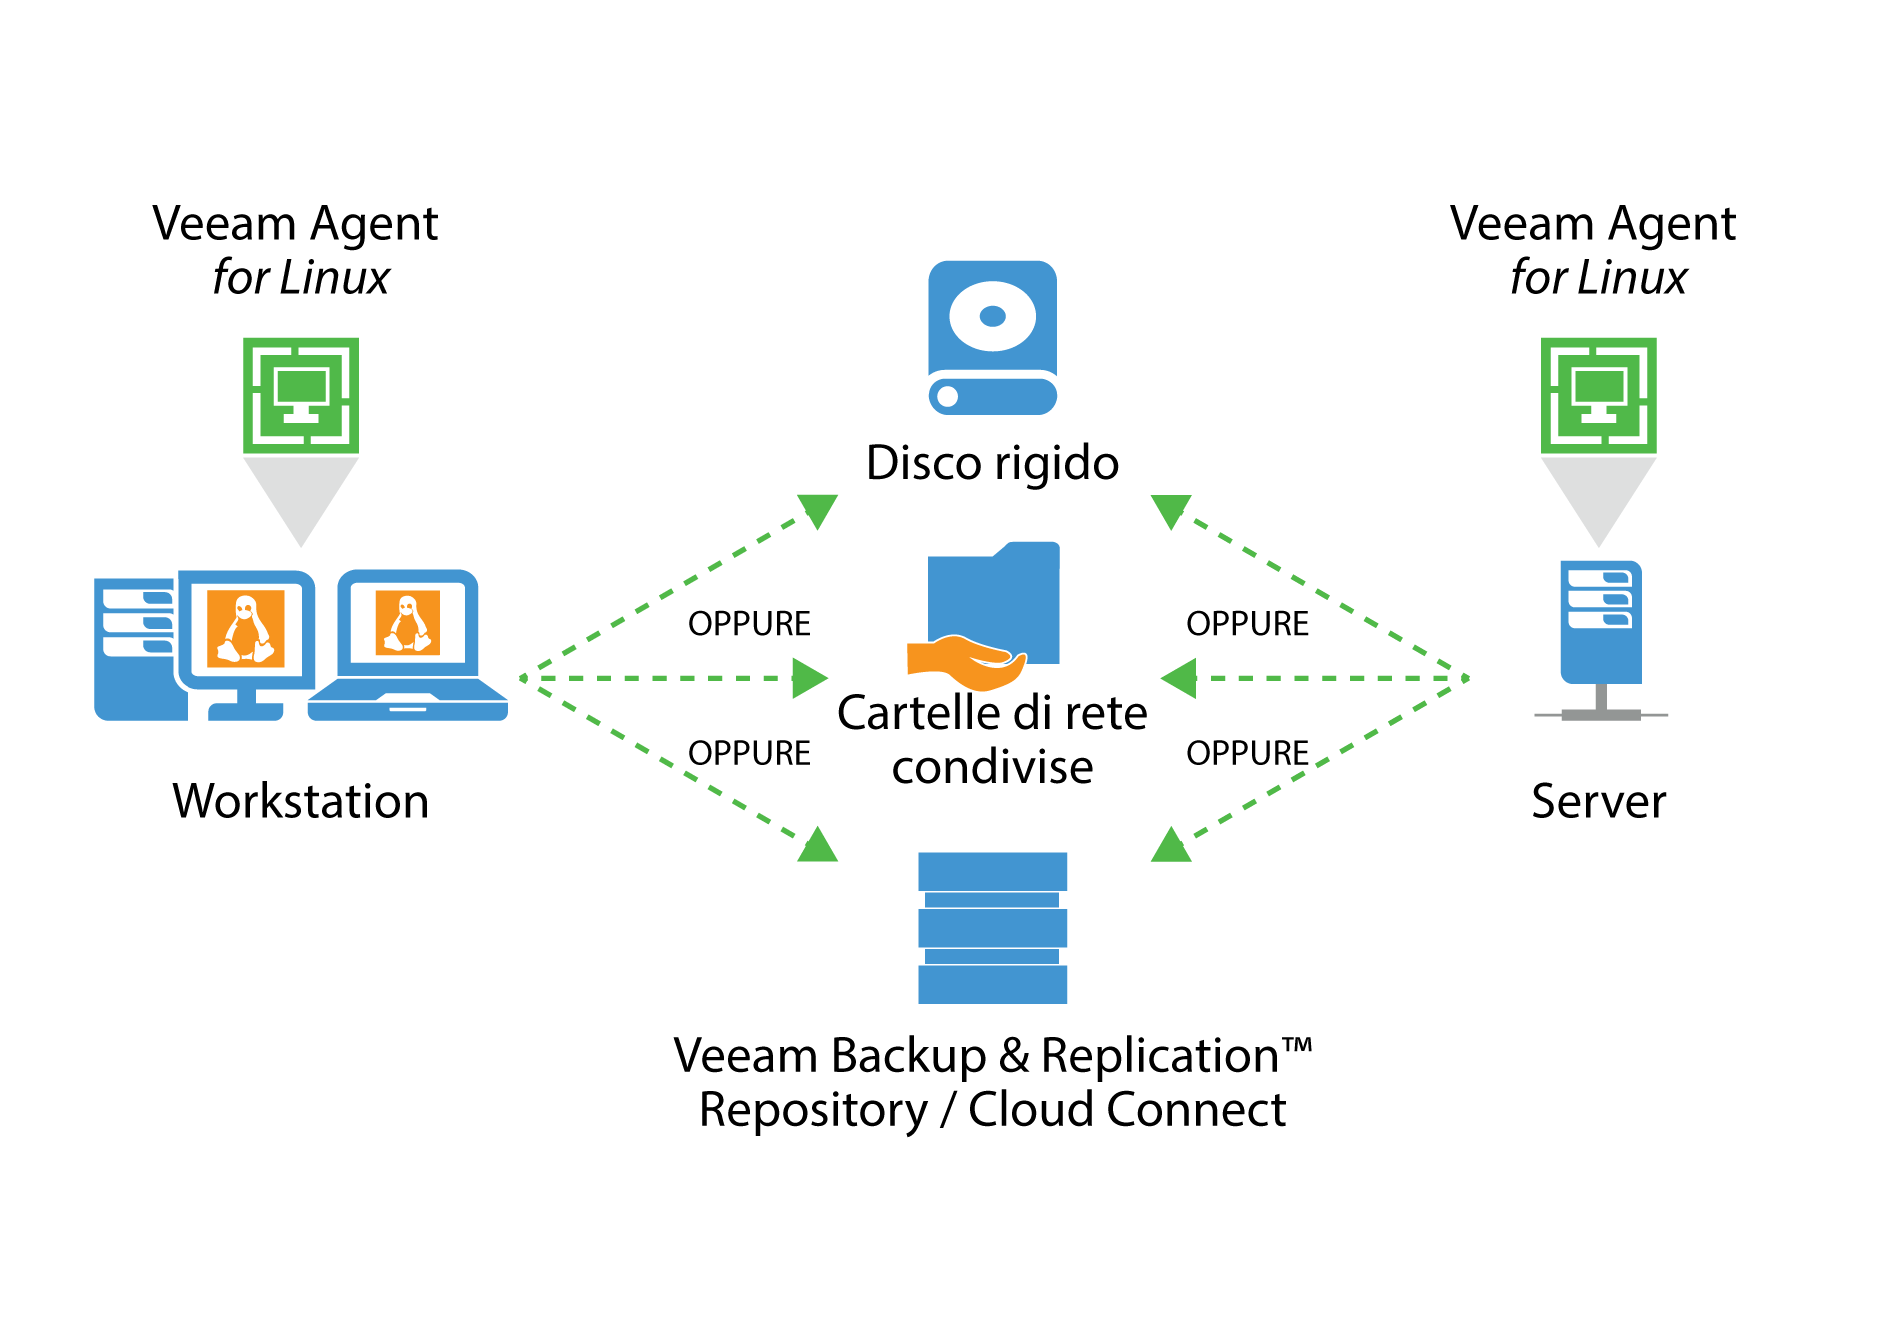 veeam_endpoint_how_it_works_for_linux_it.png